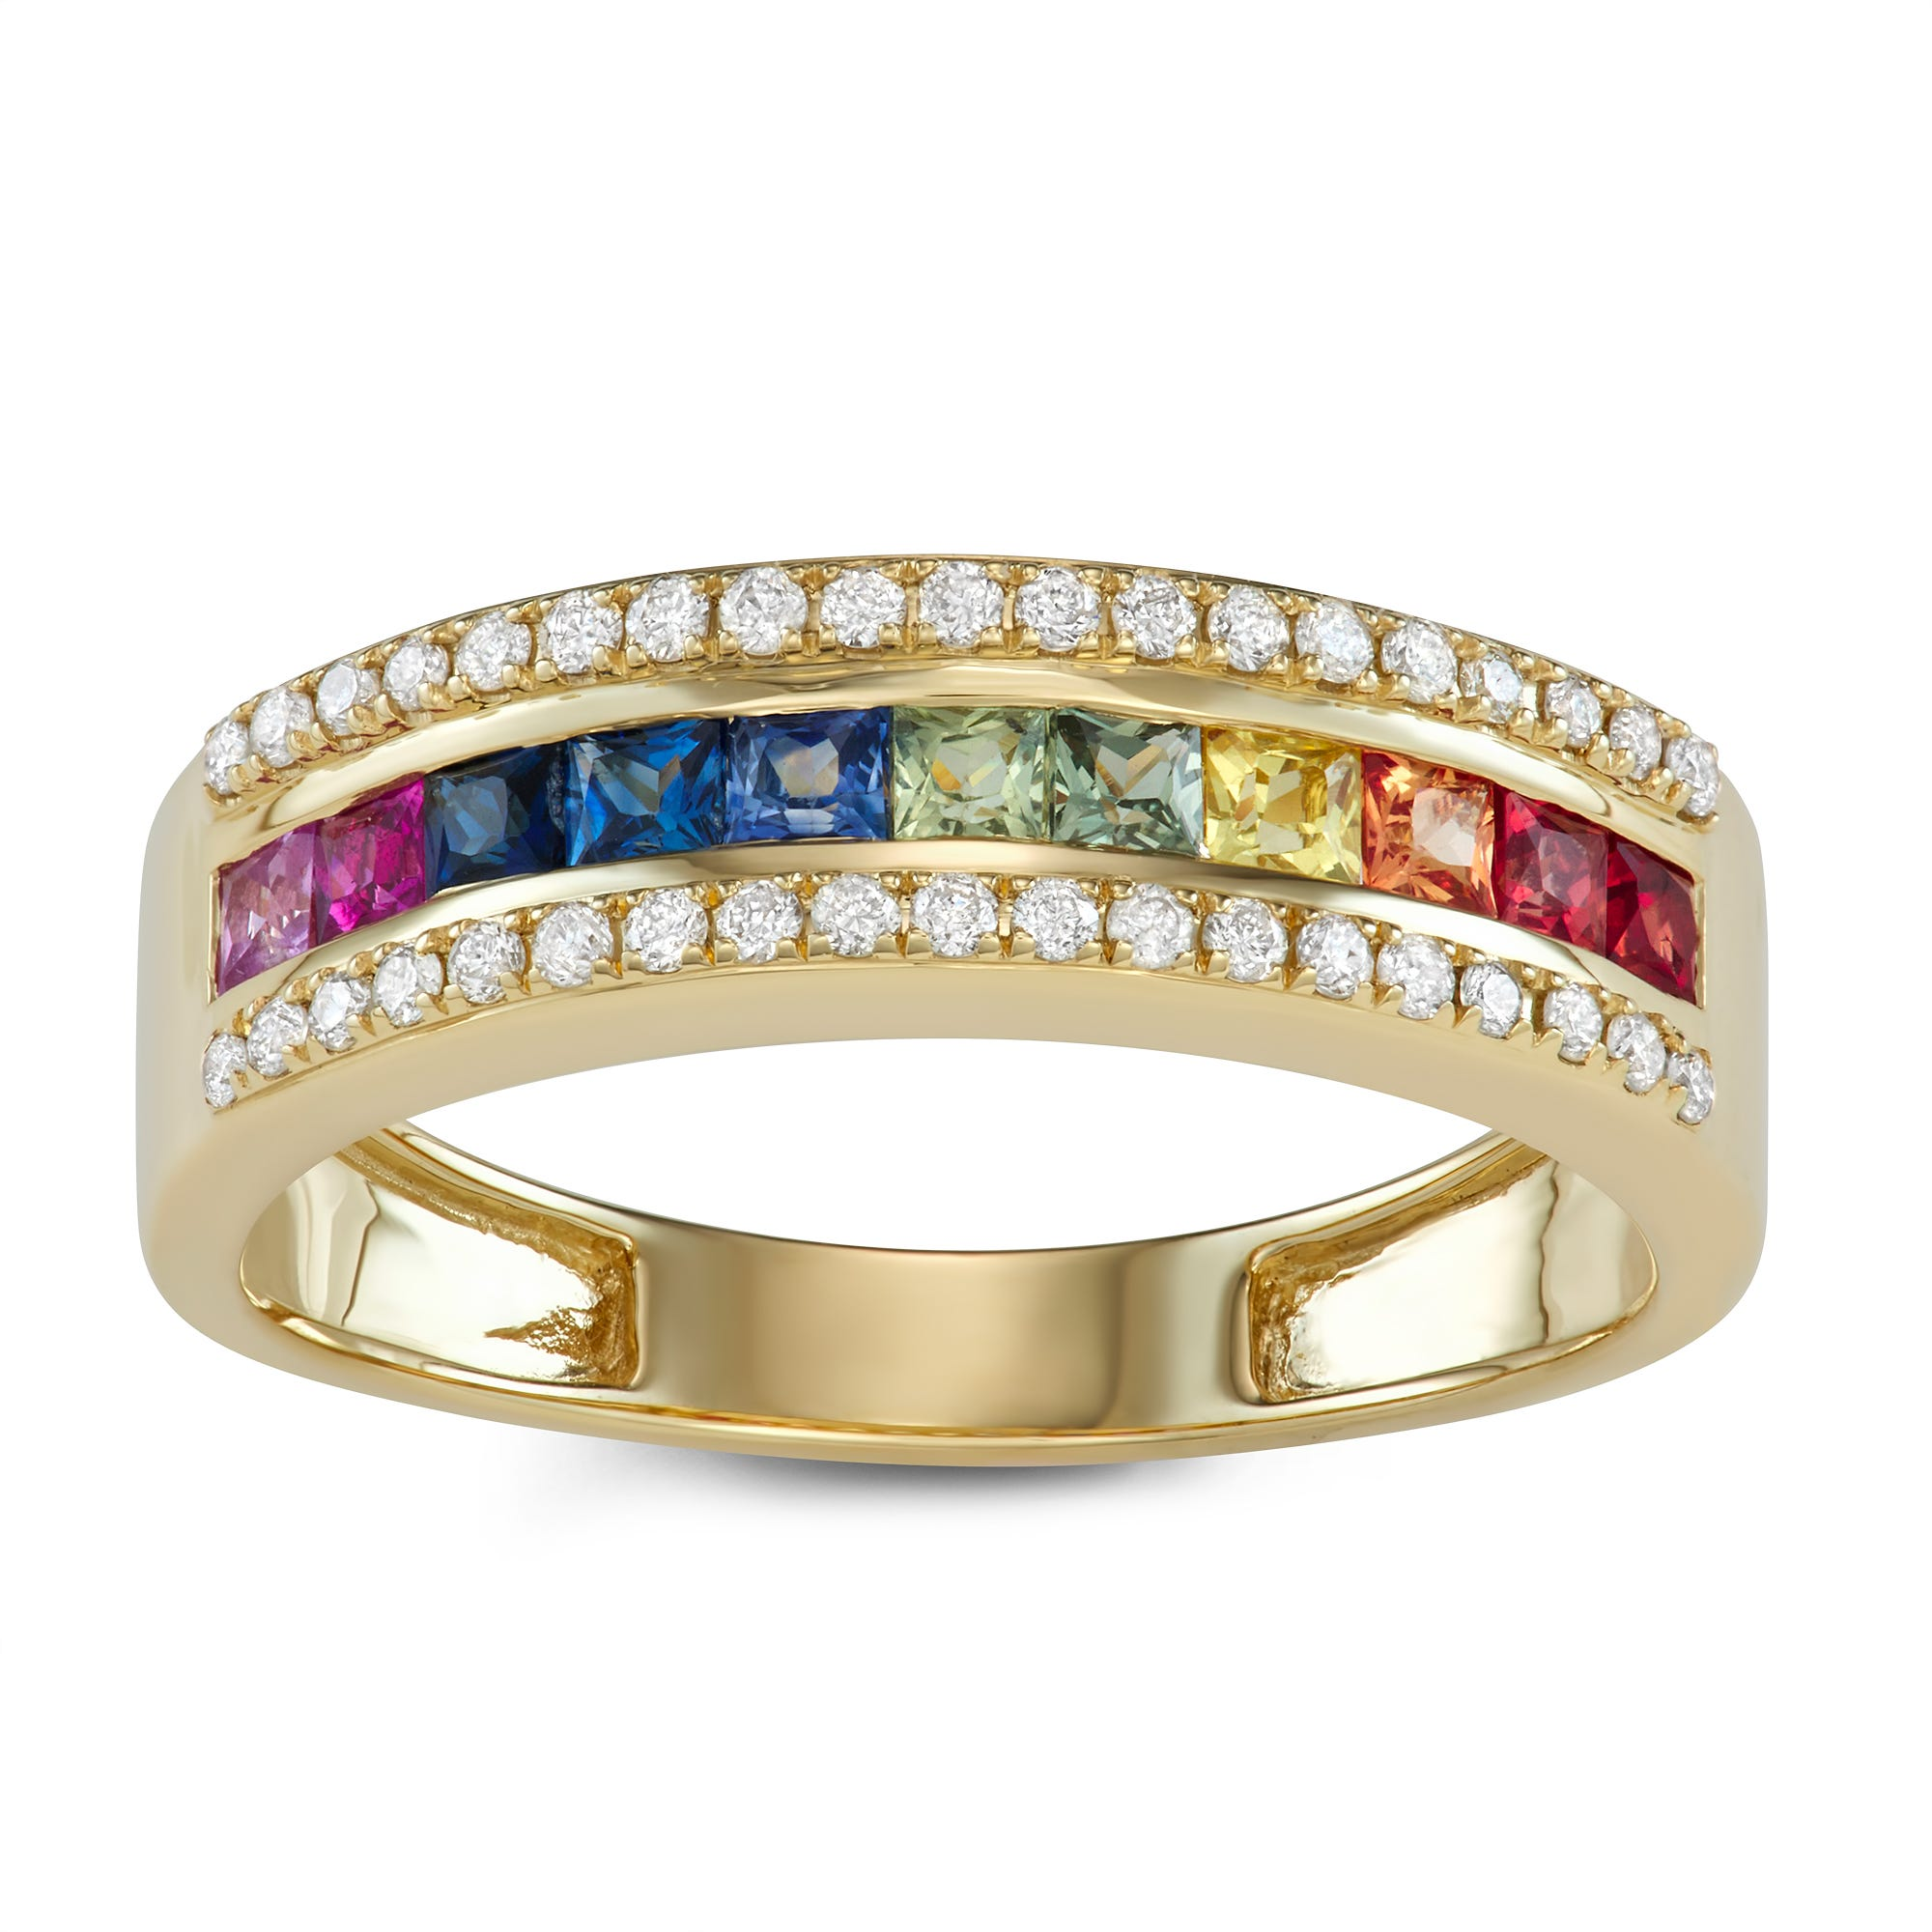 Rainbow Sapphire & Diamond Ring in 14k Yellow Gold